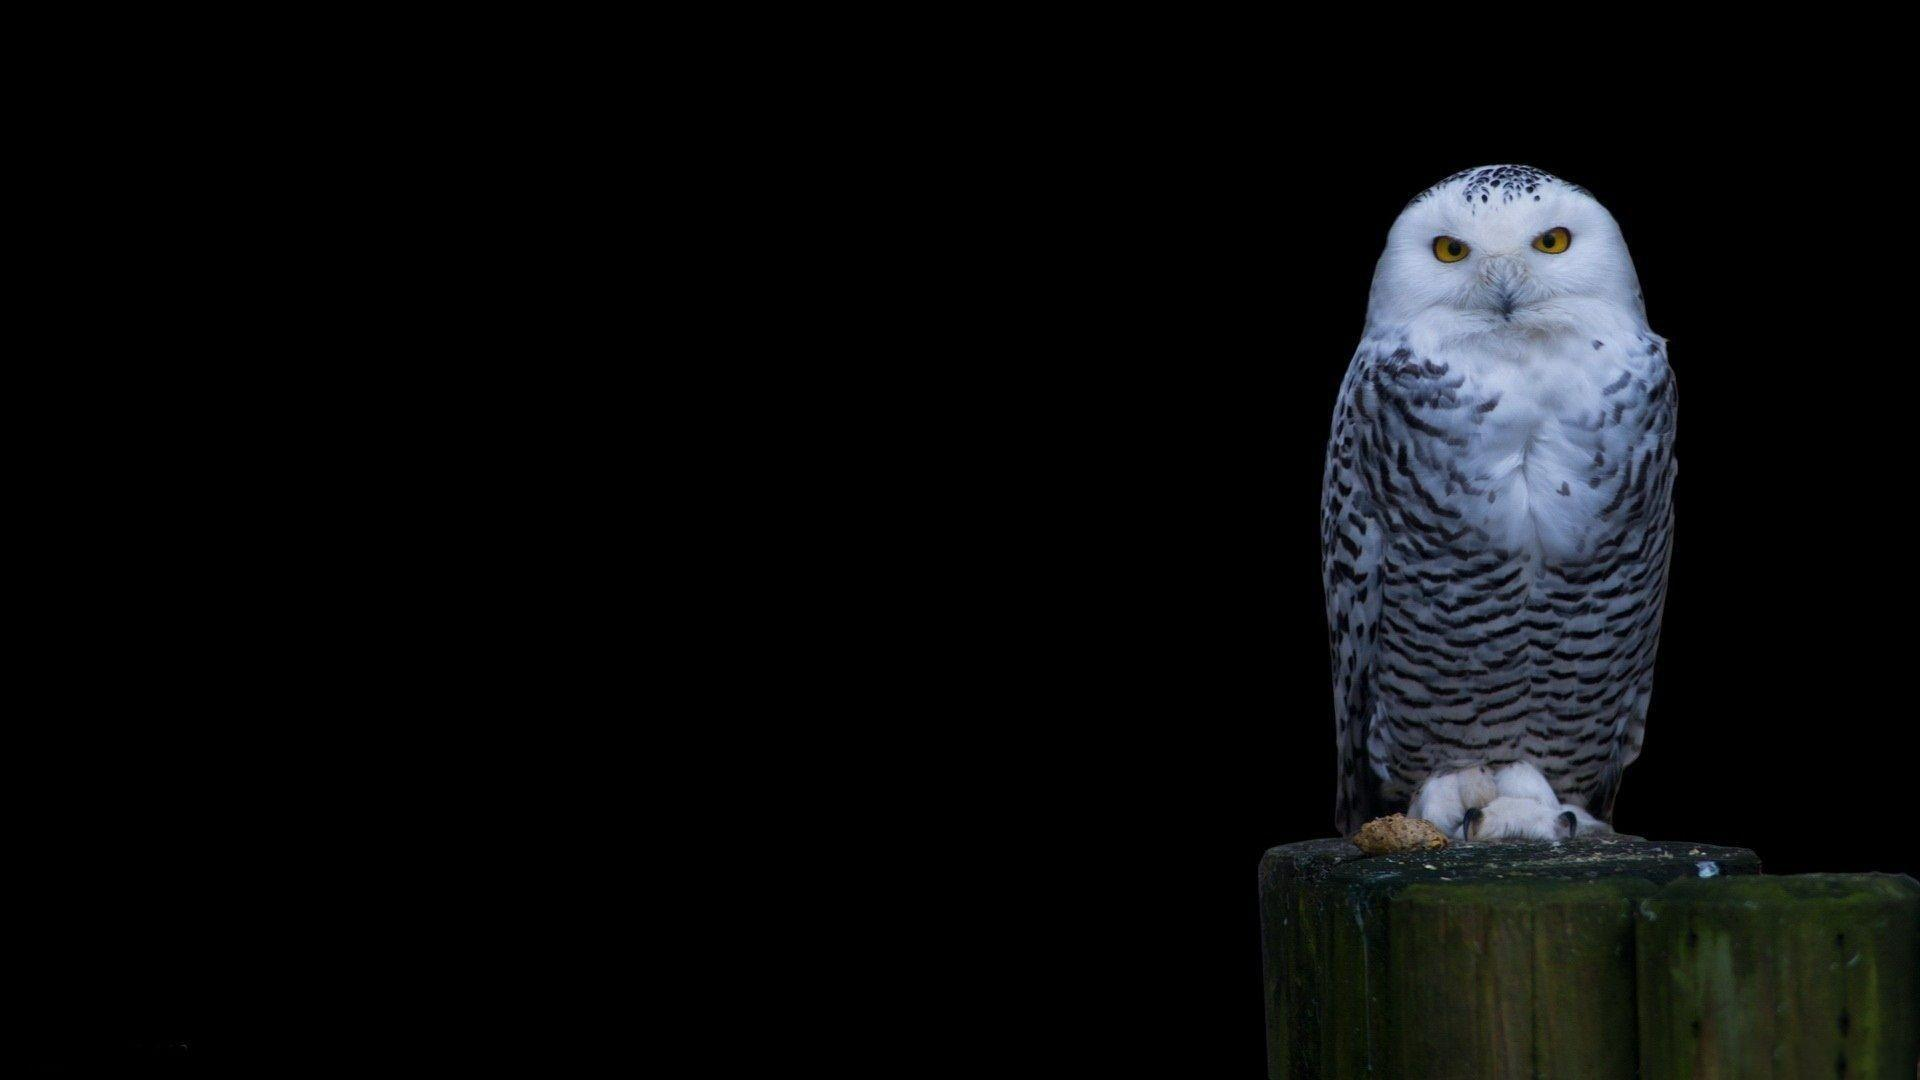 Snowy Owl Wallp... Owl Desktop Wallpaper Hd